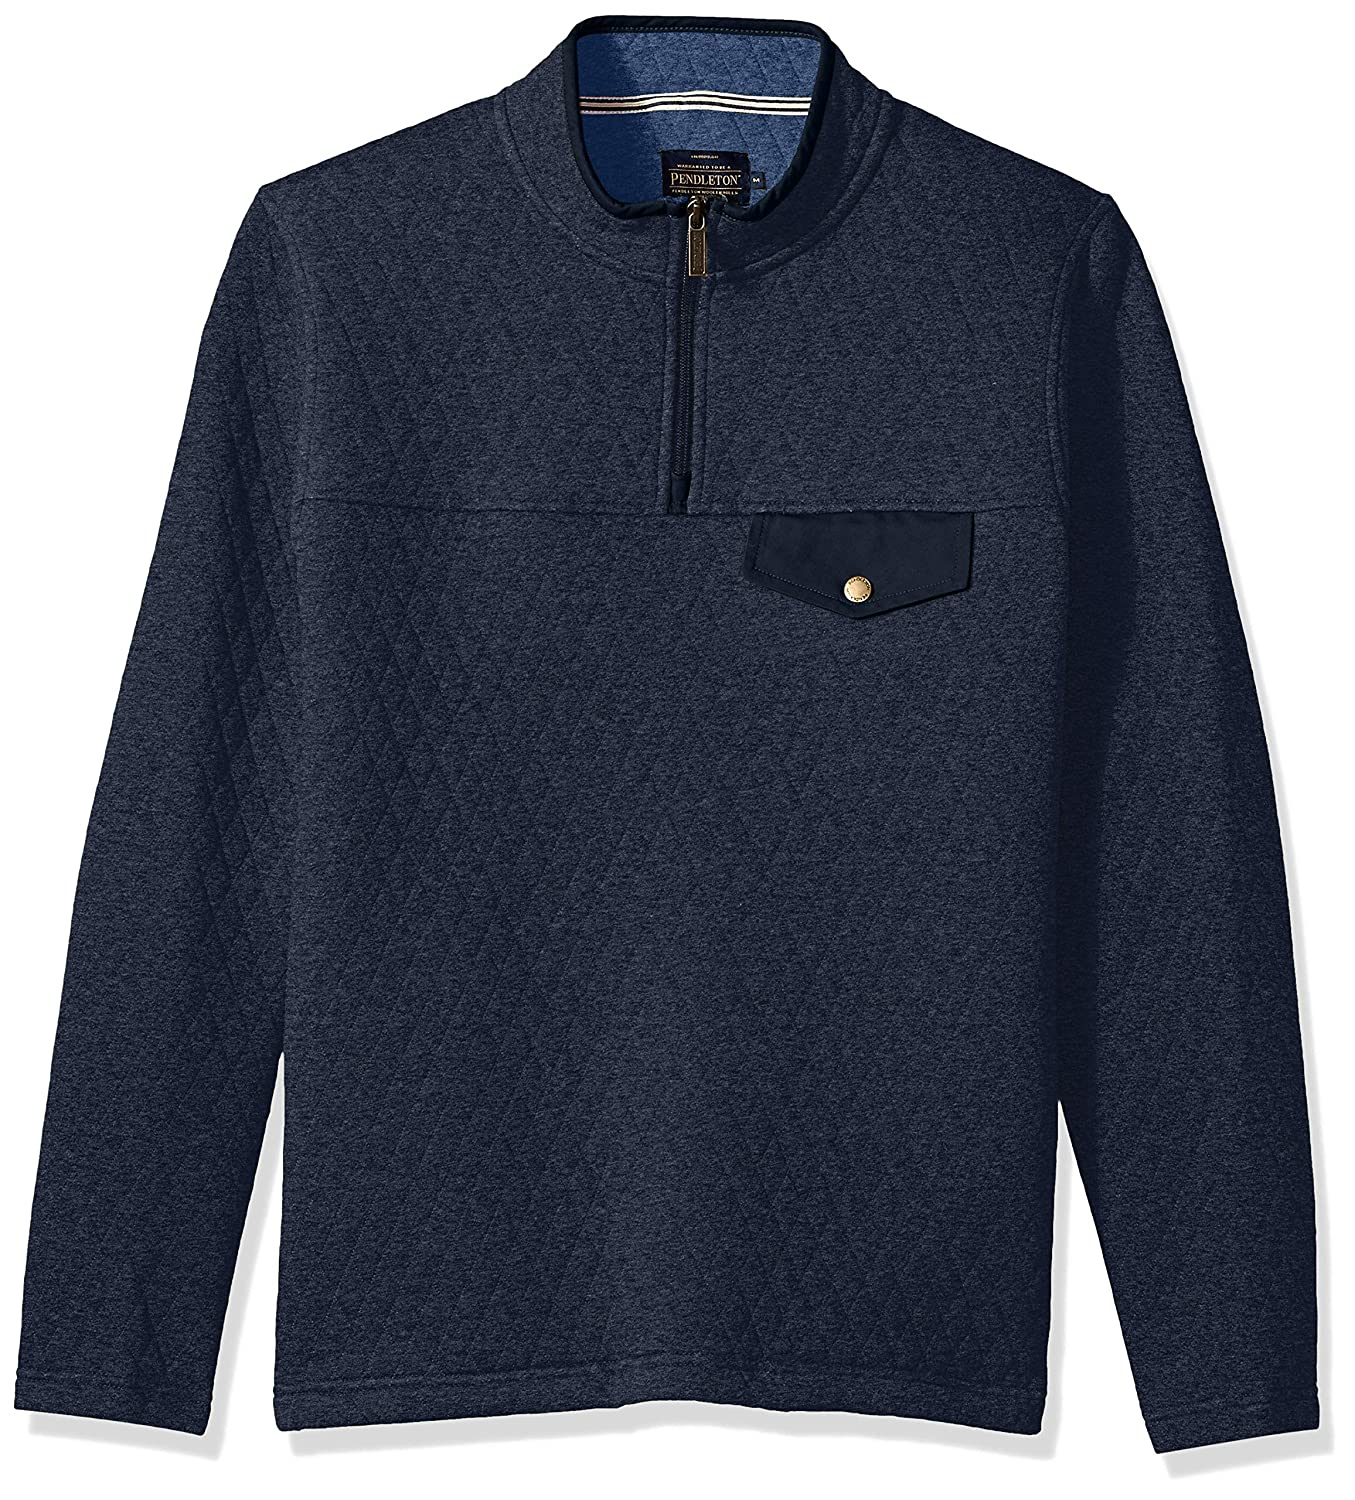 Navy Heather M Pendleton Men's Long Sleeve Steens Quilted Popover Sweatshirt